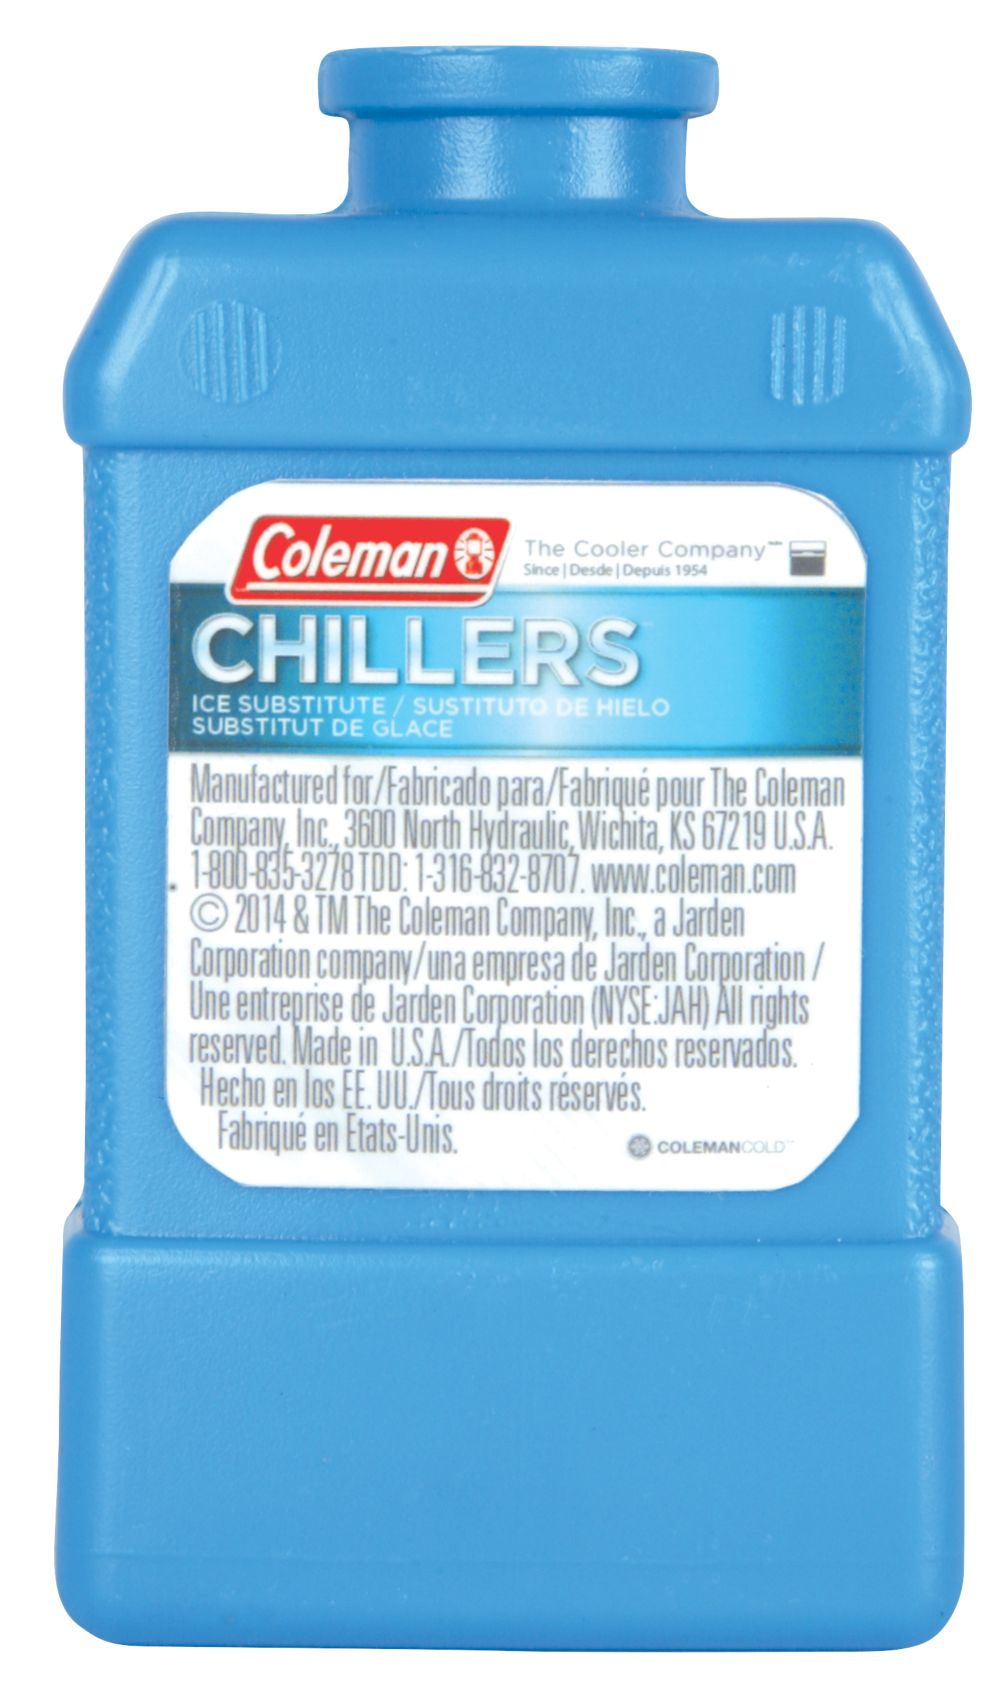 Chillers™ Lunch Pack Ice Substitute